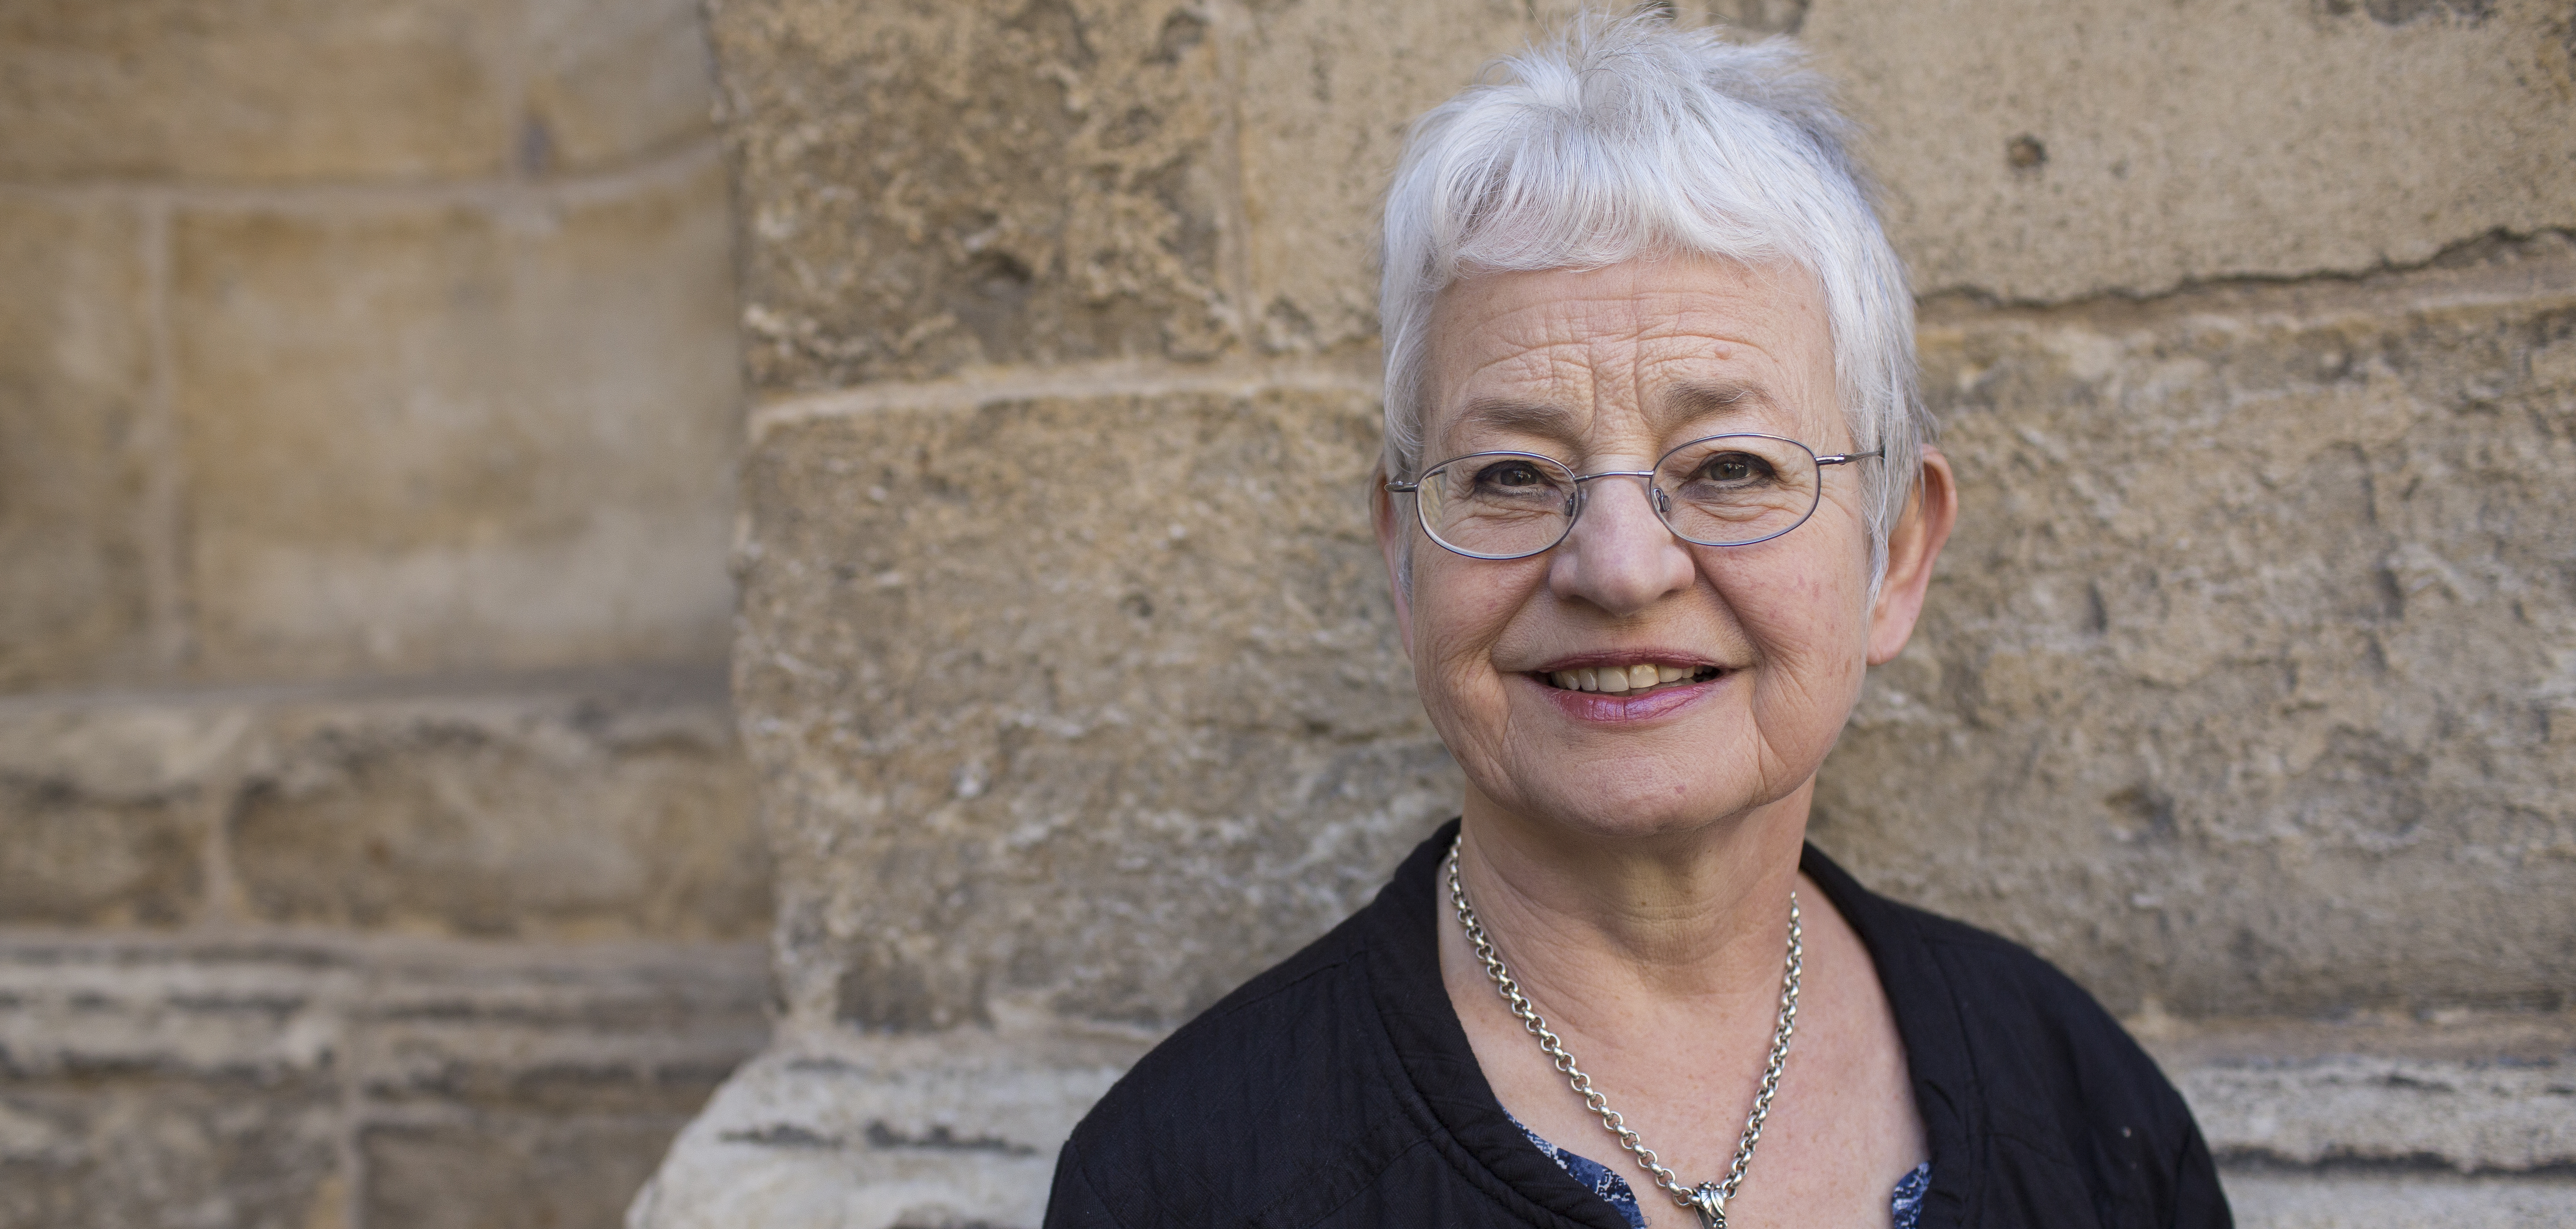 Author Jacqueline Wilson, 74, Comes Out As Gay